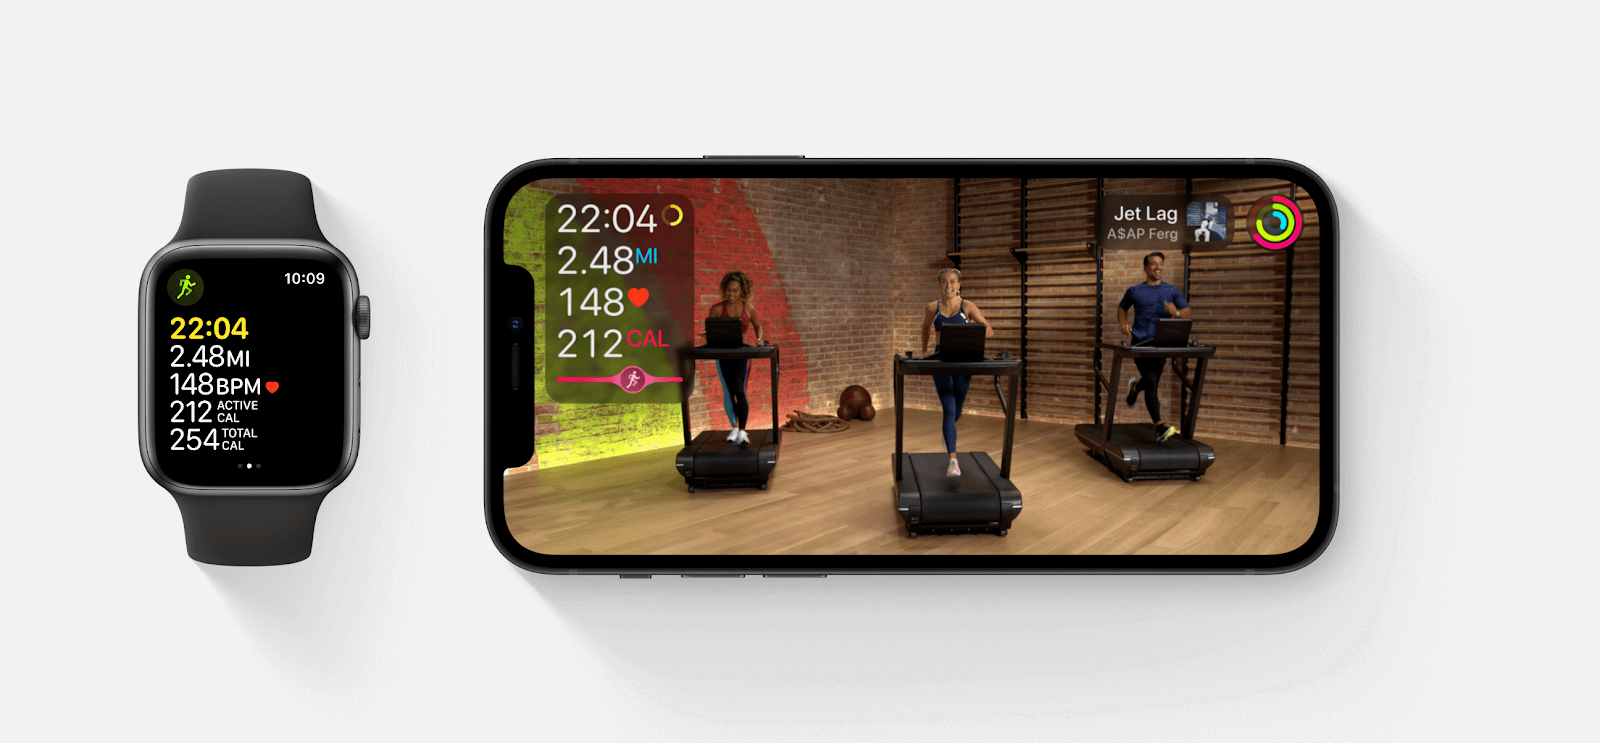 Apple Fitness+ announcements